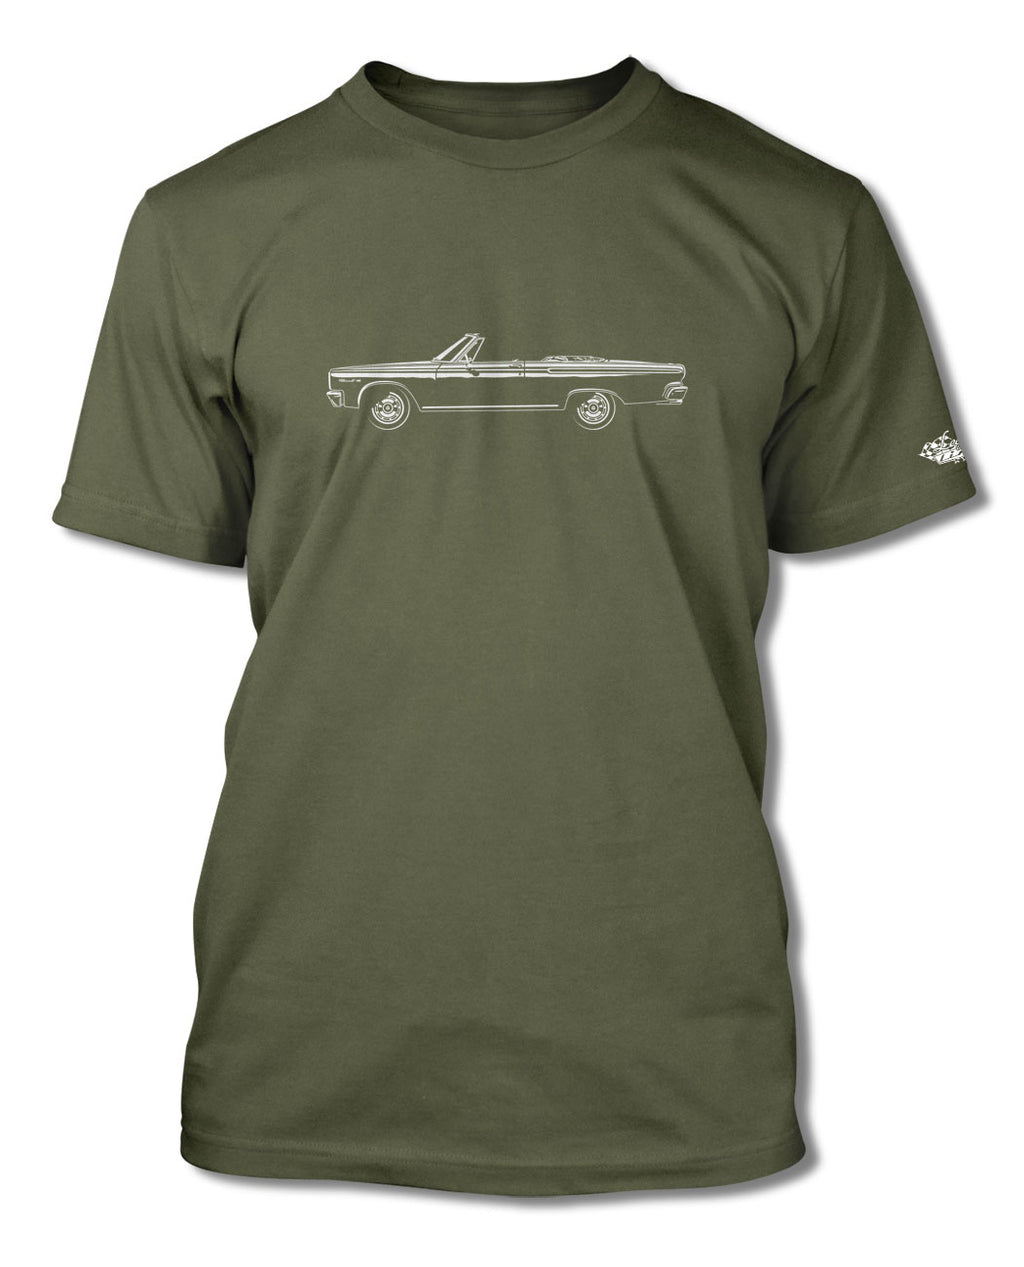 1965 Dodge Coronet 440 Convertible T-Shirt - Men - Side View